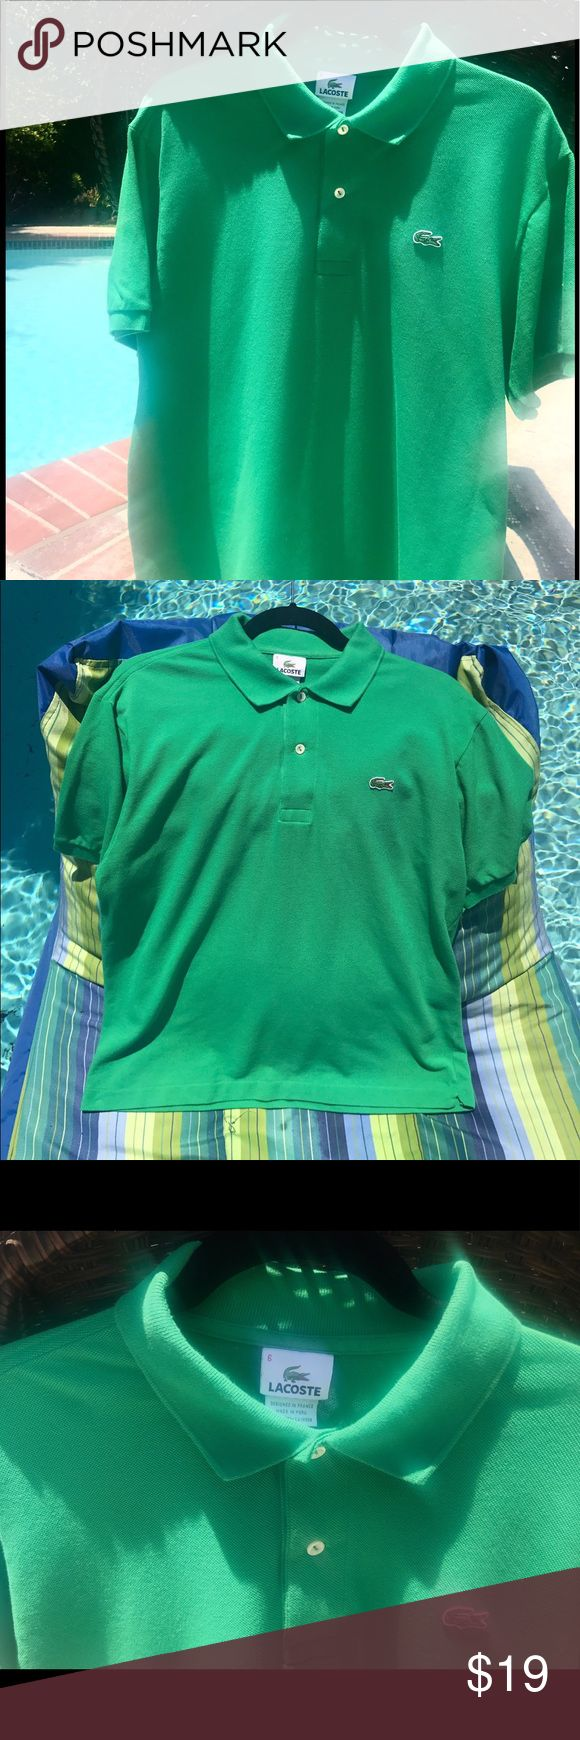 Lacoste Kelly Green Polo Shirt Vintage Size 6 Lacoste Kelly Green polo shirt. Good vintage condition! Small snag on bottom back right but barely noticeable (see photo). Size 6. Perfect for summer wear! Lacoste Tops Tees - Short Sleeve